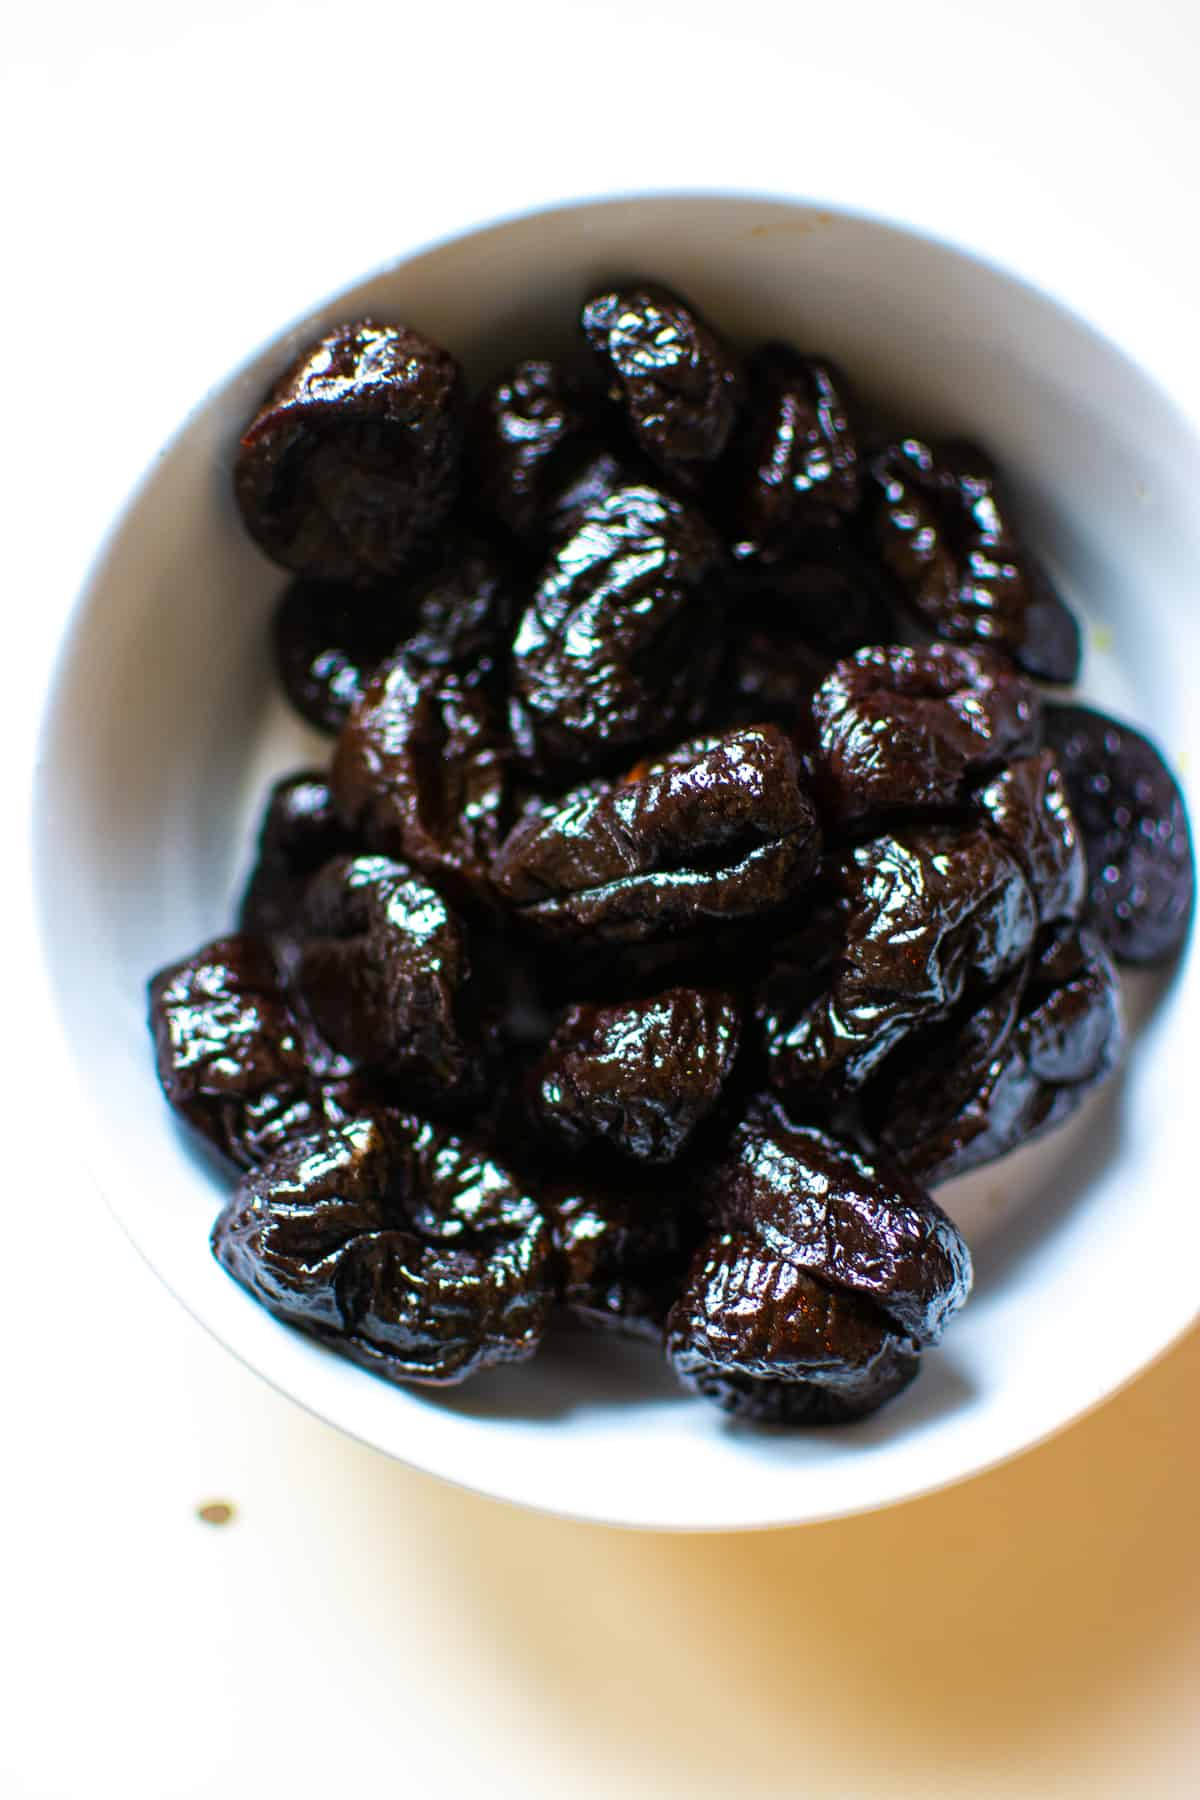 A bowl of prunes sitting on a white counter.